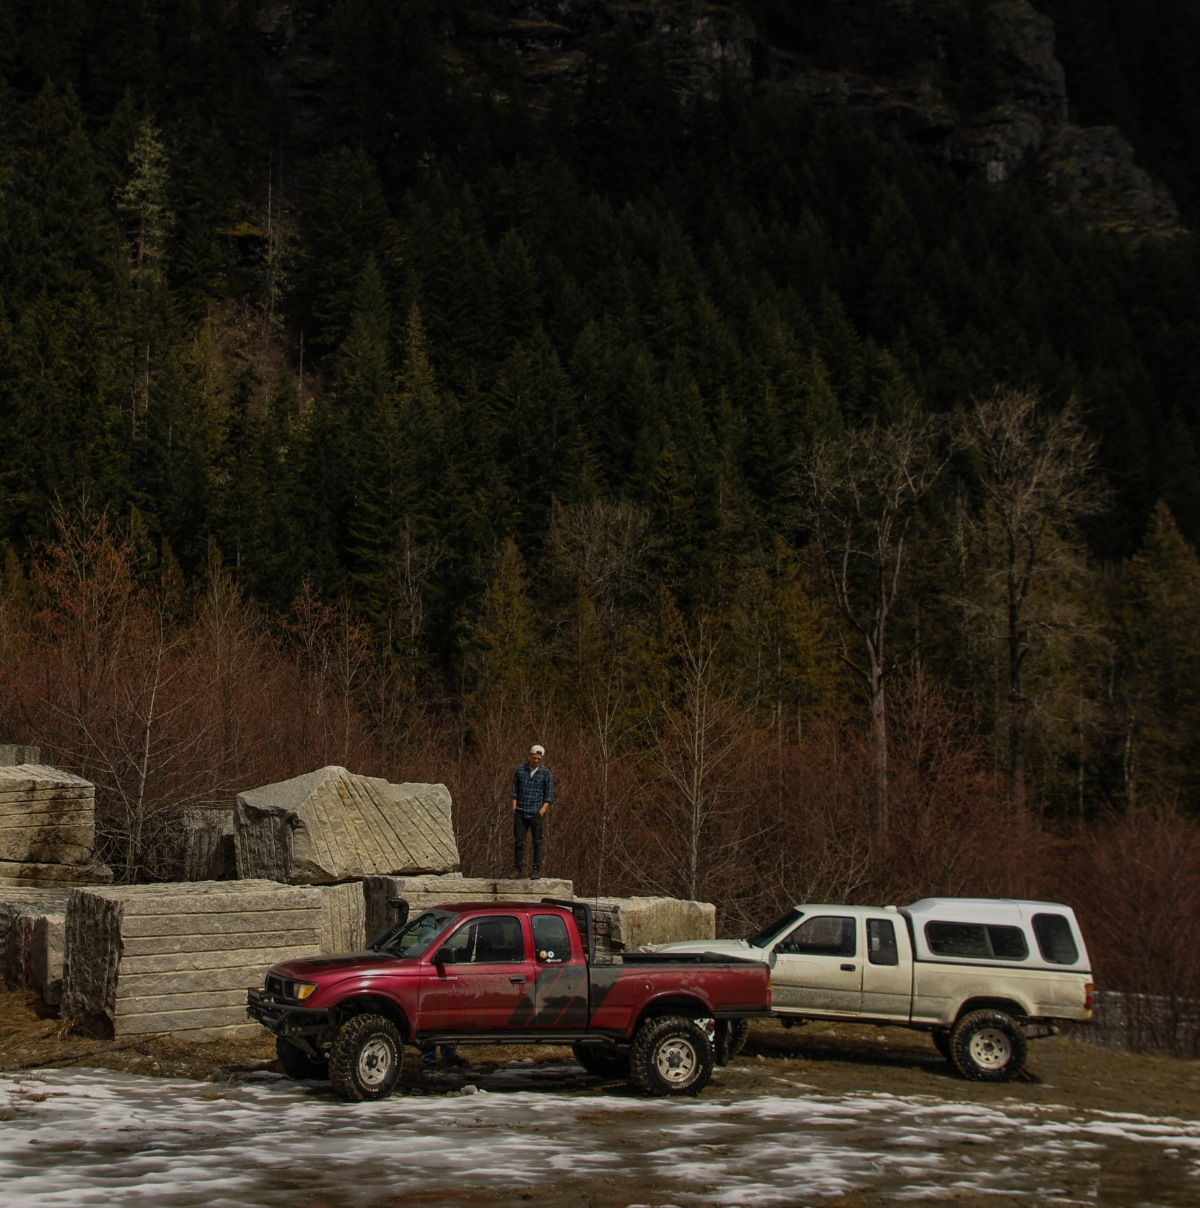 Matt led us to this little quarry where we found these massive slabs of rock lying around waiting to be taken away.